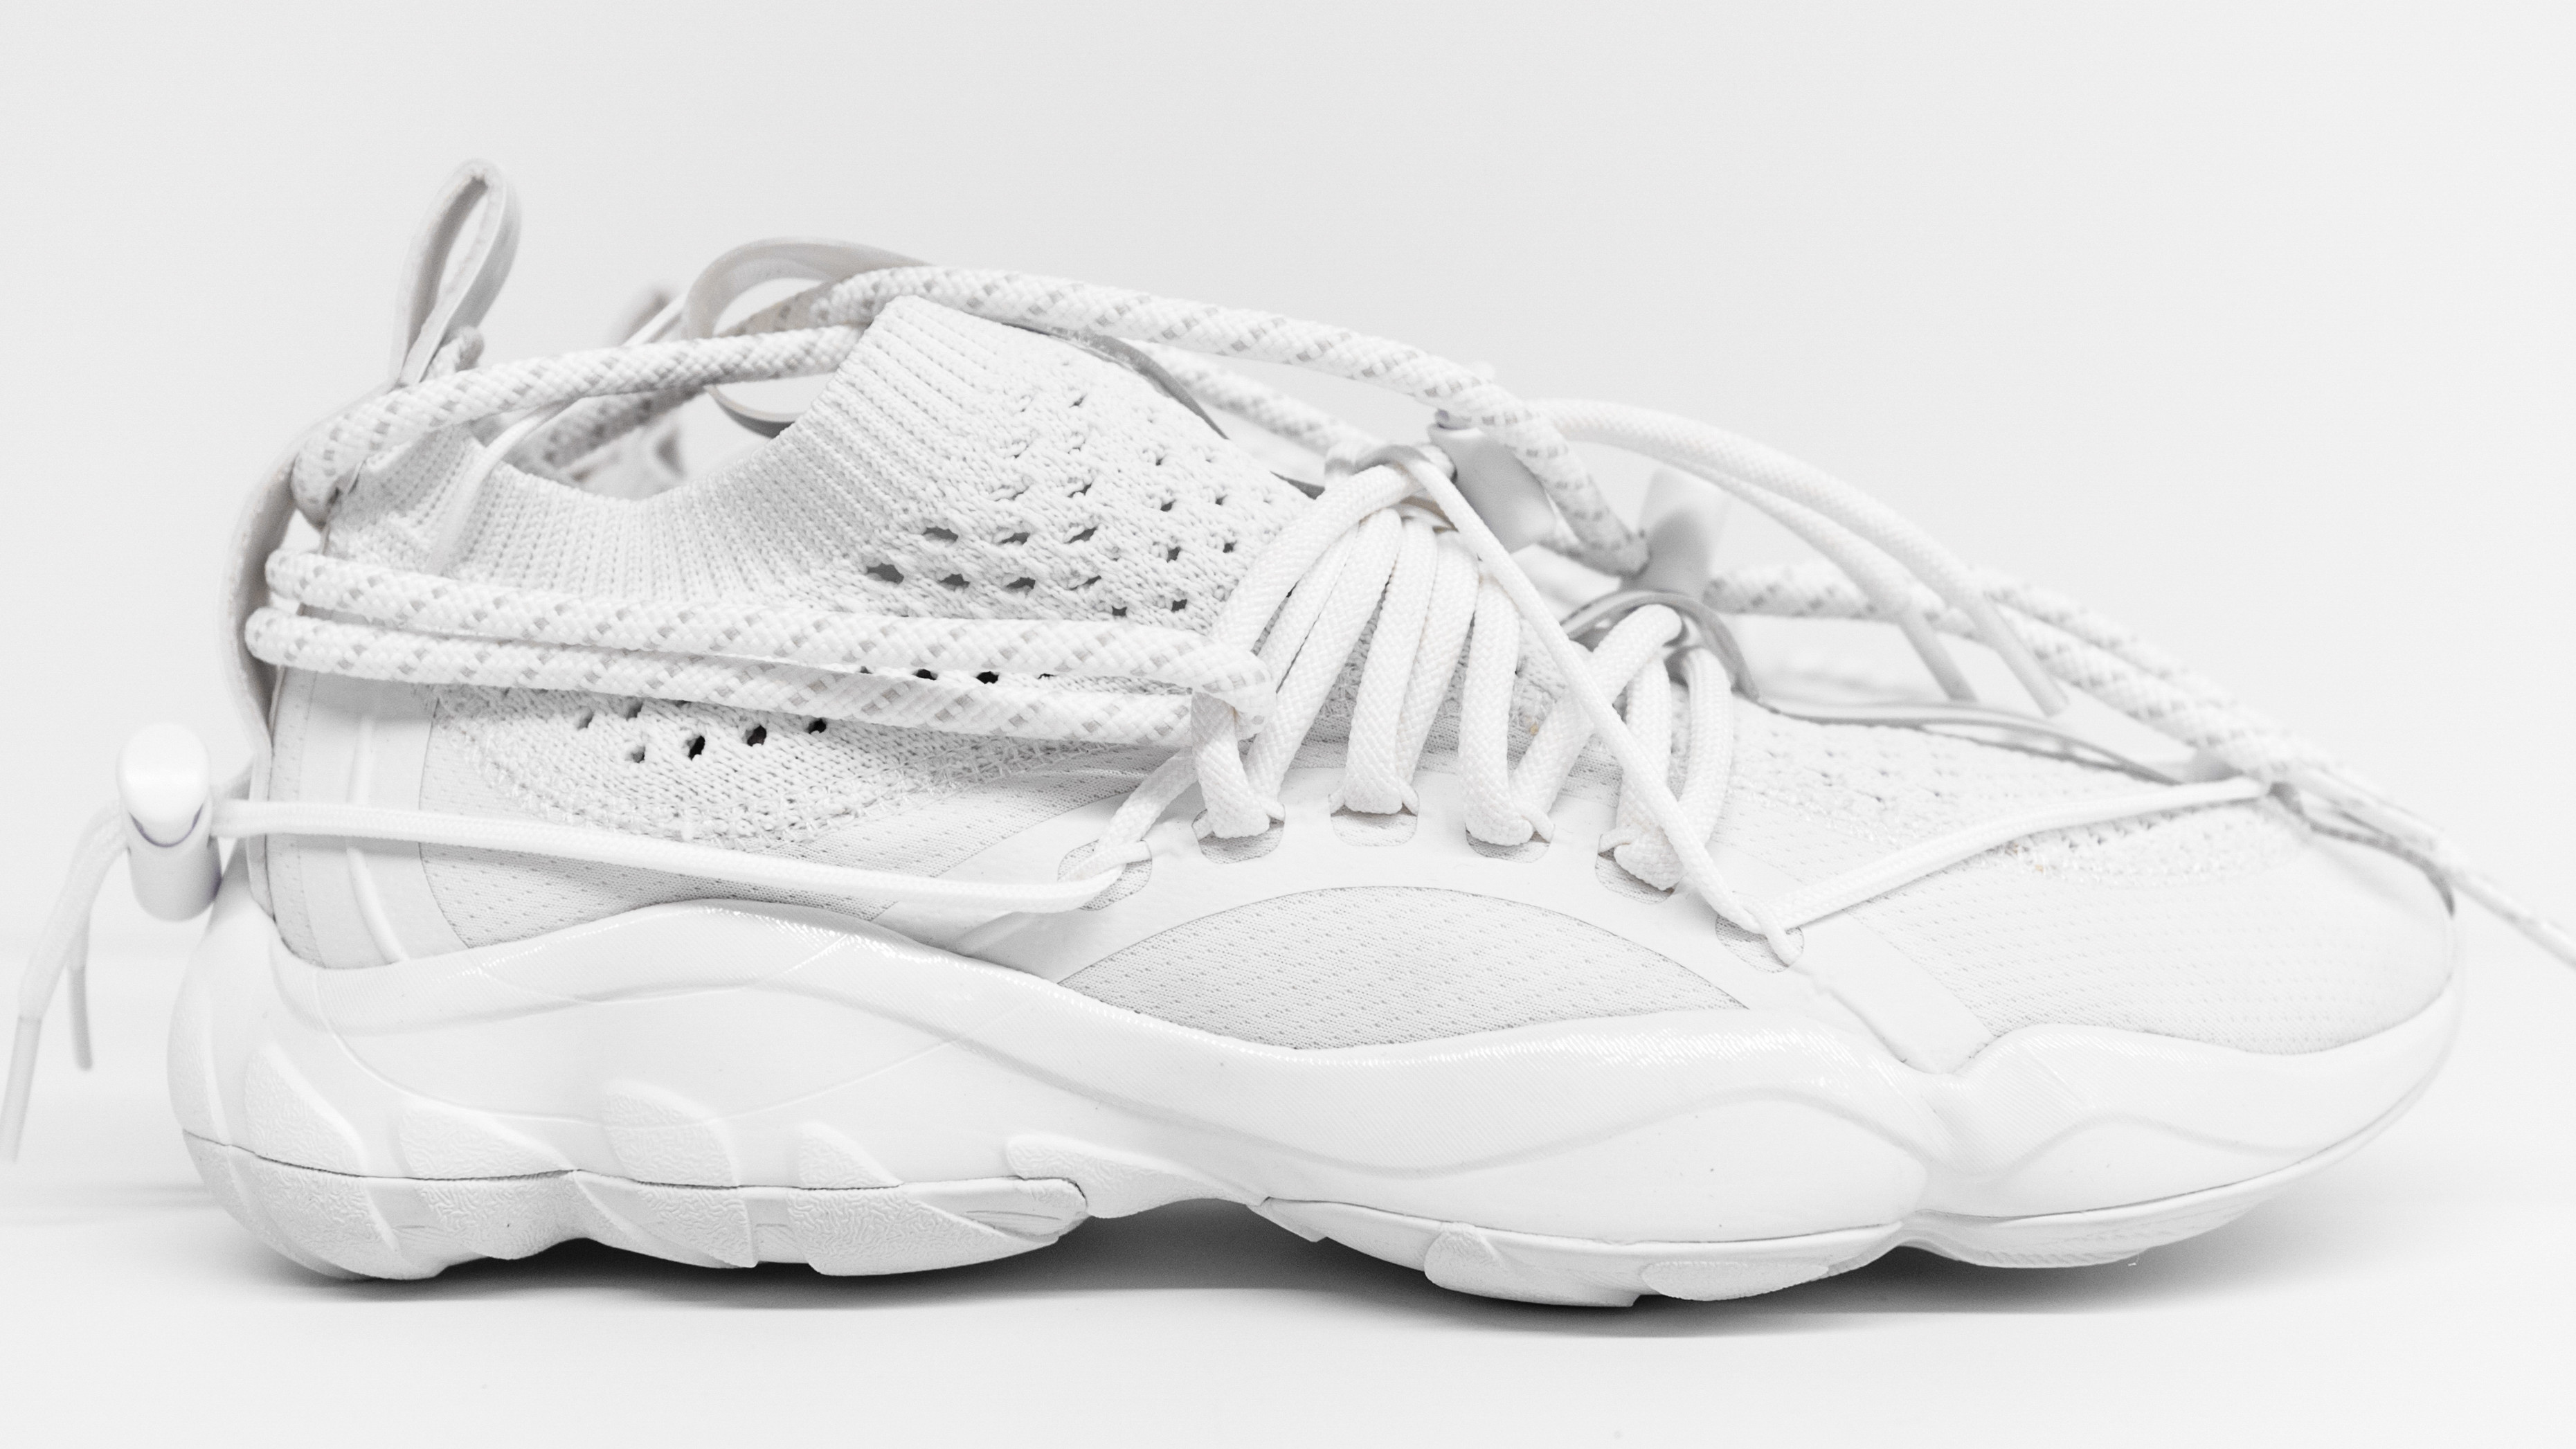 4dbb0609719afb Reebok DMX Fusion Experiment by Pyer Moss Release Date